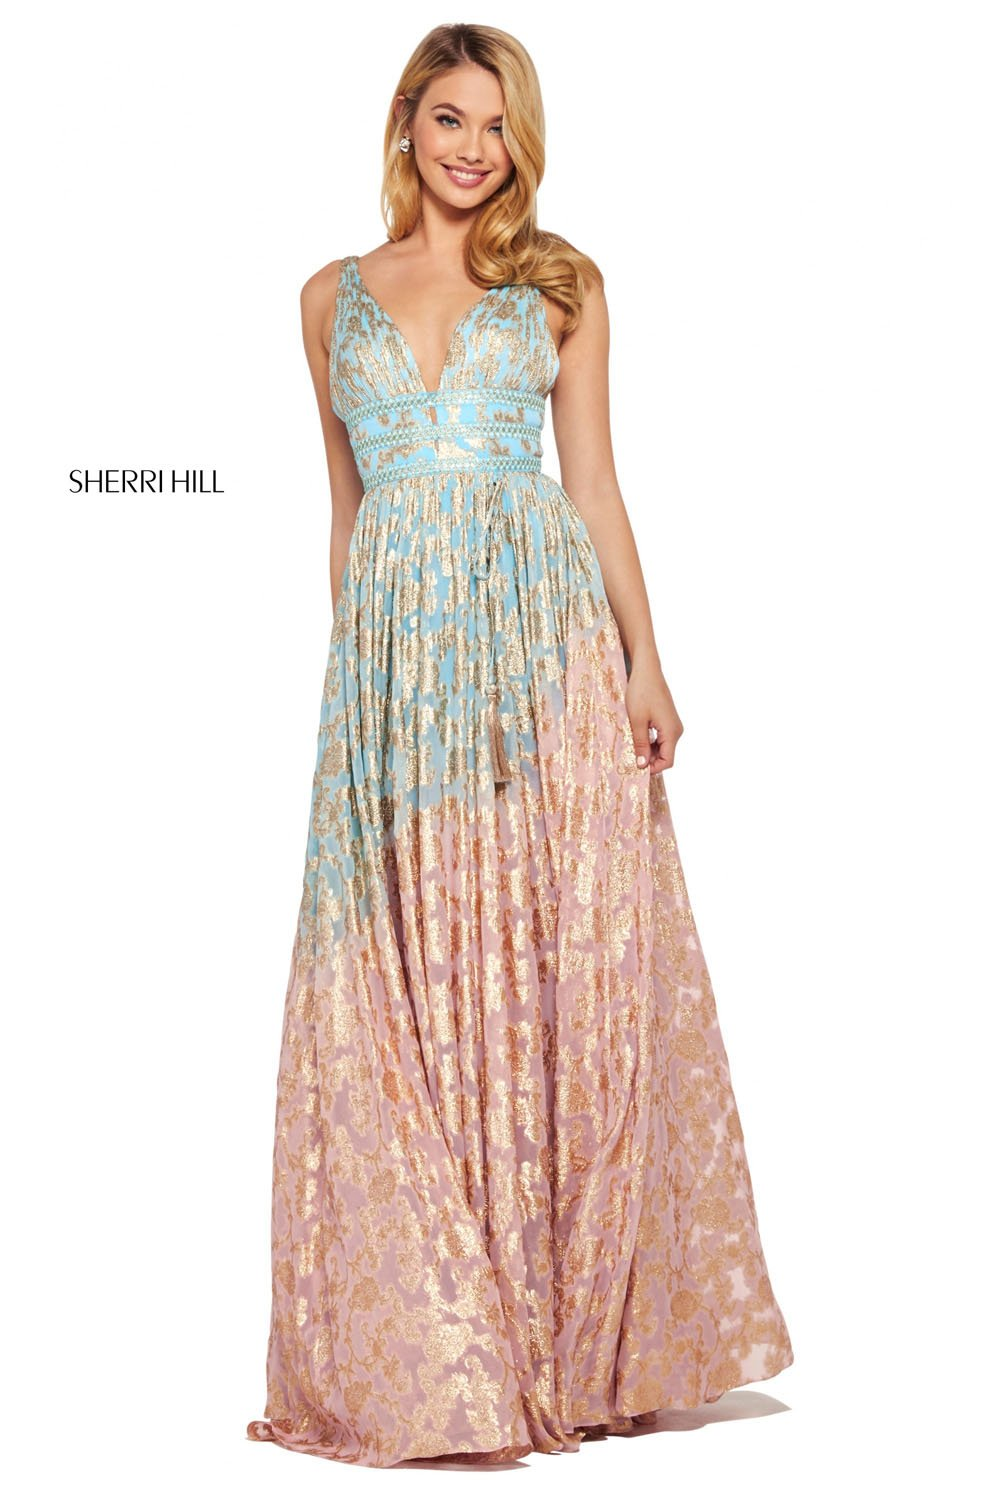 Sherri Hill 53375 prom dress images.  Sherri Hill 53375 is available in these colors: Light Blue Pink, Nude Aqua, Lilac Gold, Periwinkle Coral.